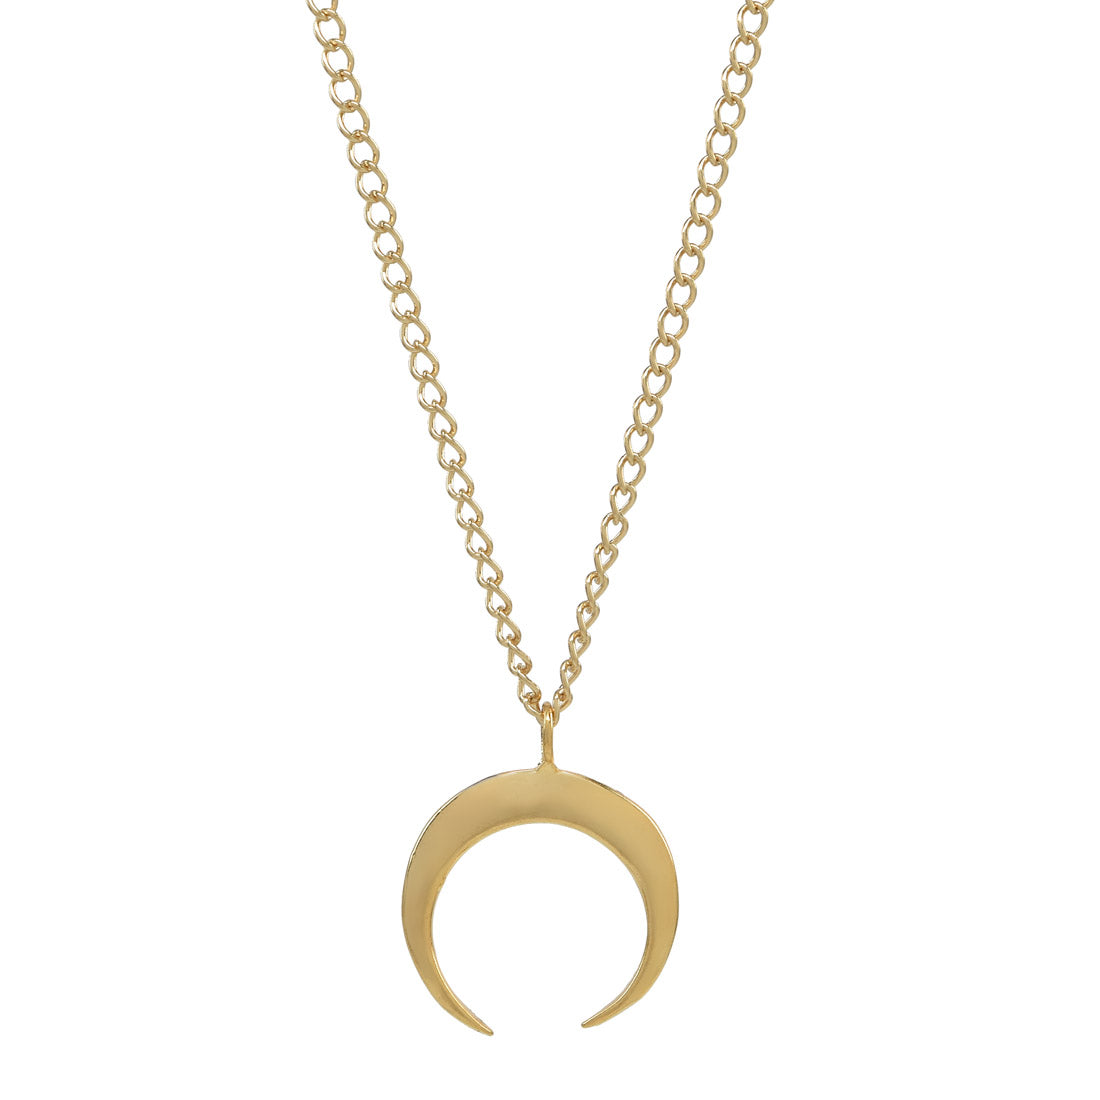 moon influence rose crescent necklaces necklace gold female image vermeil